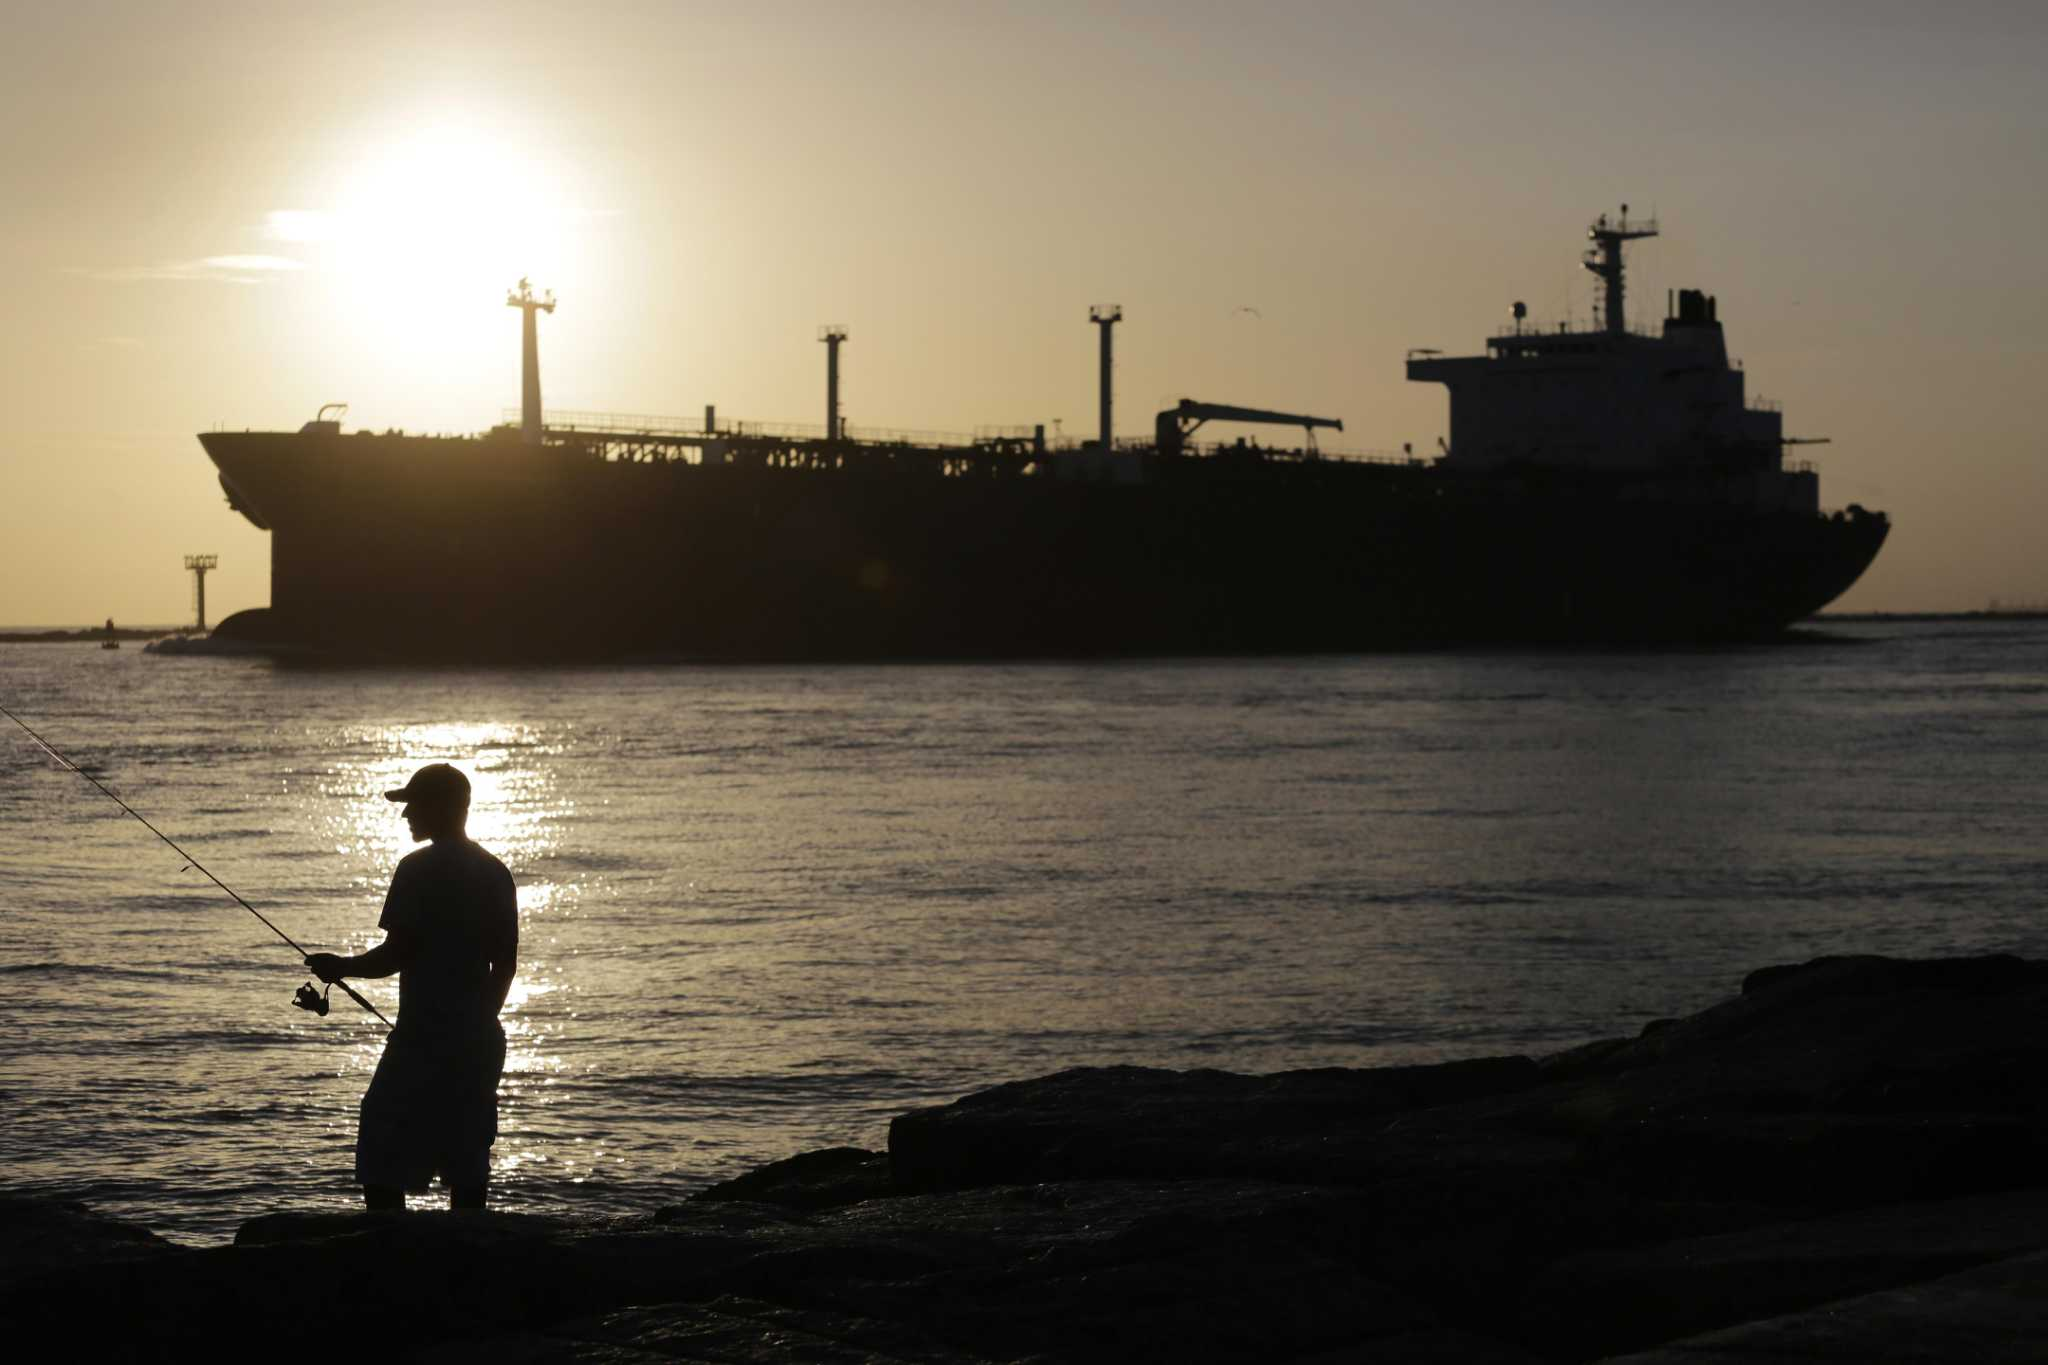 The race to build offshore oil export terminals